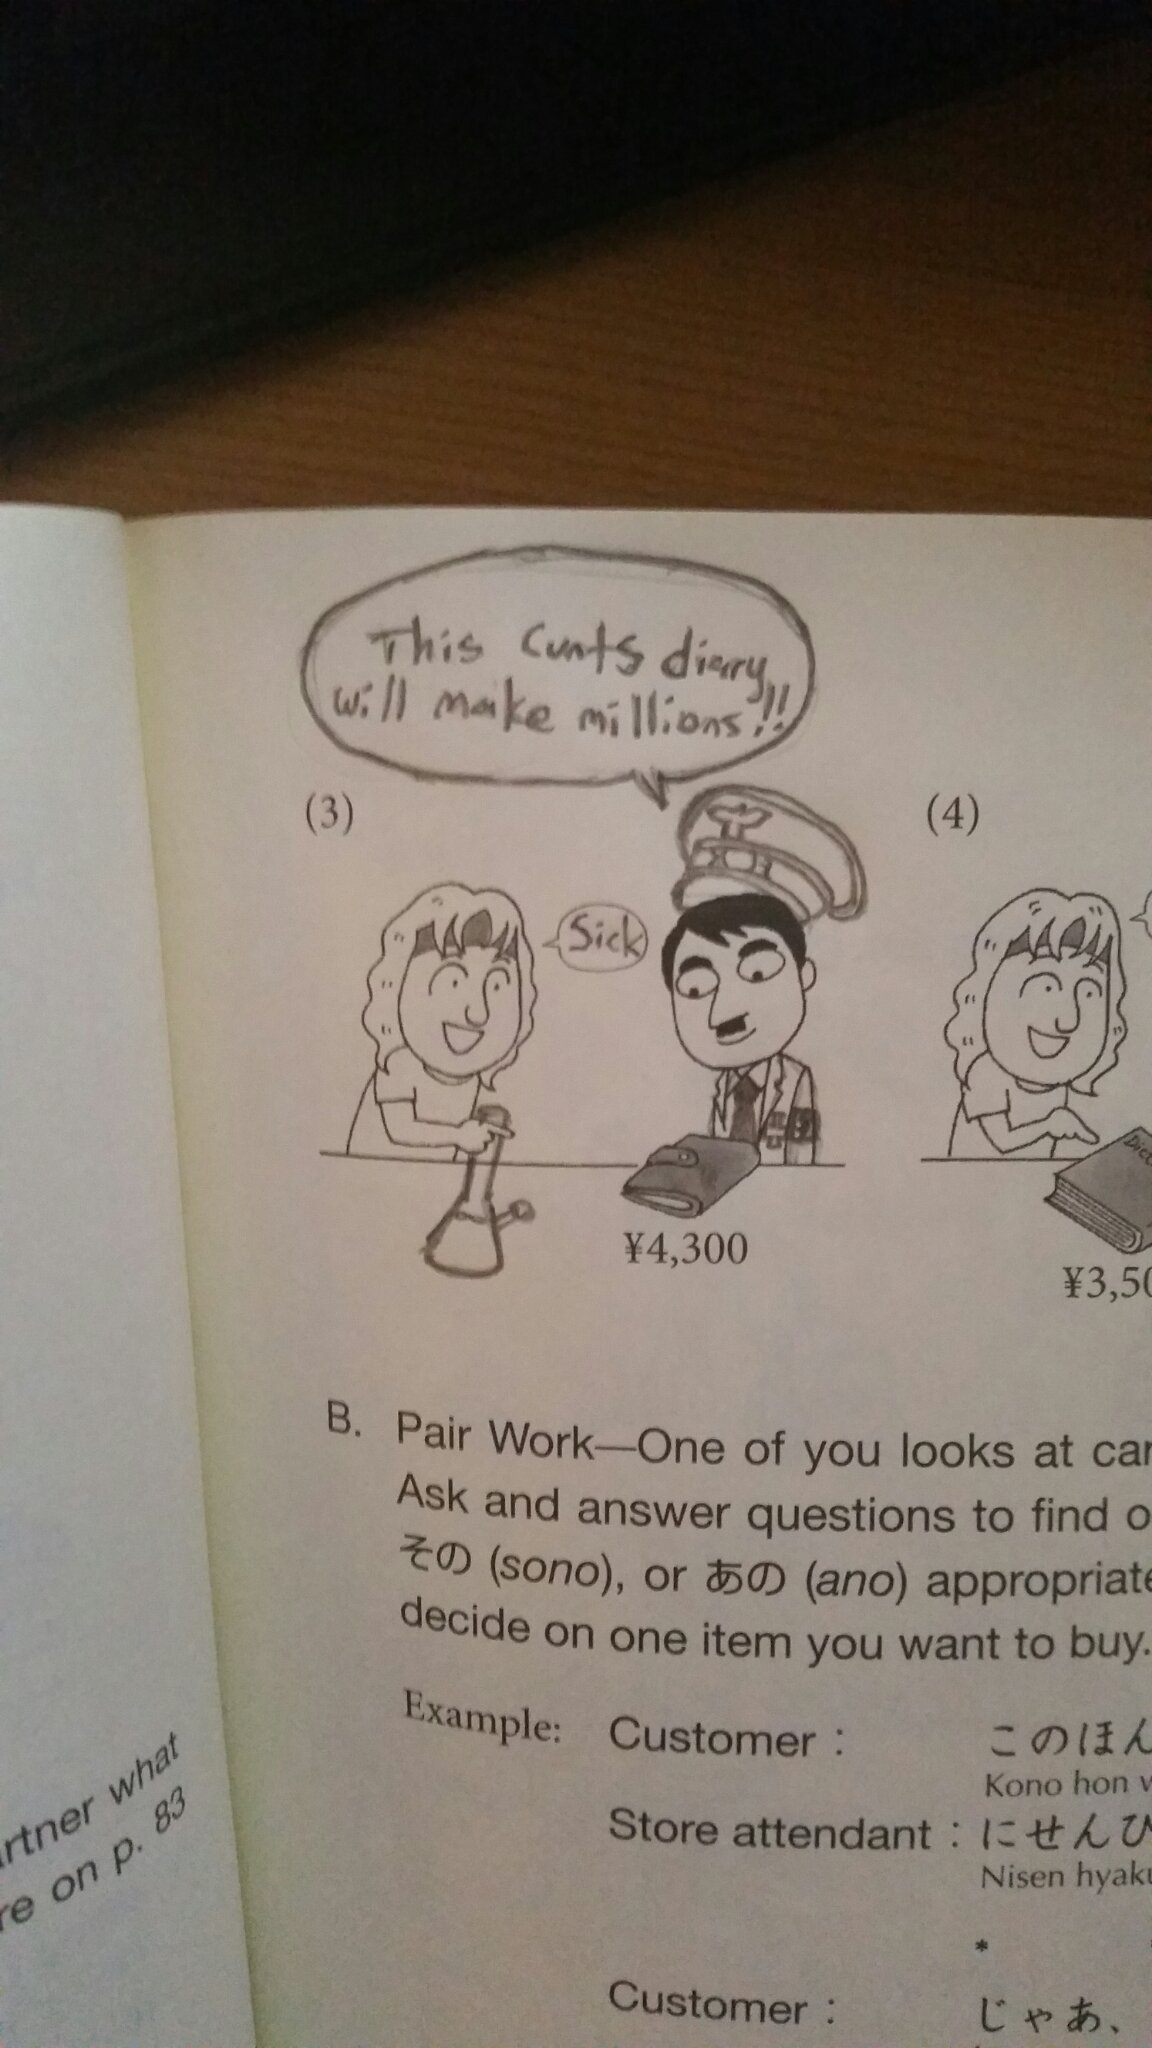 Found hitler in my japanese text book - meme